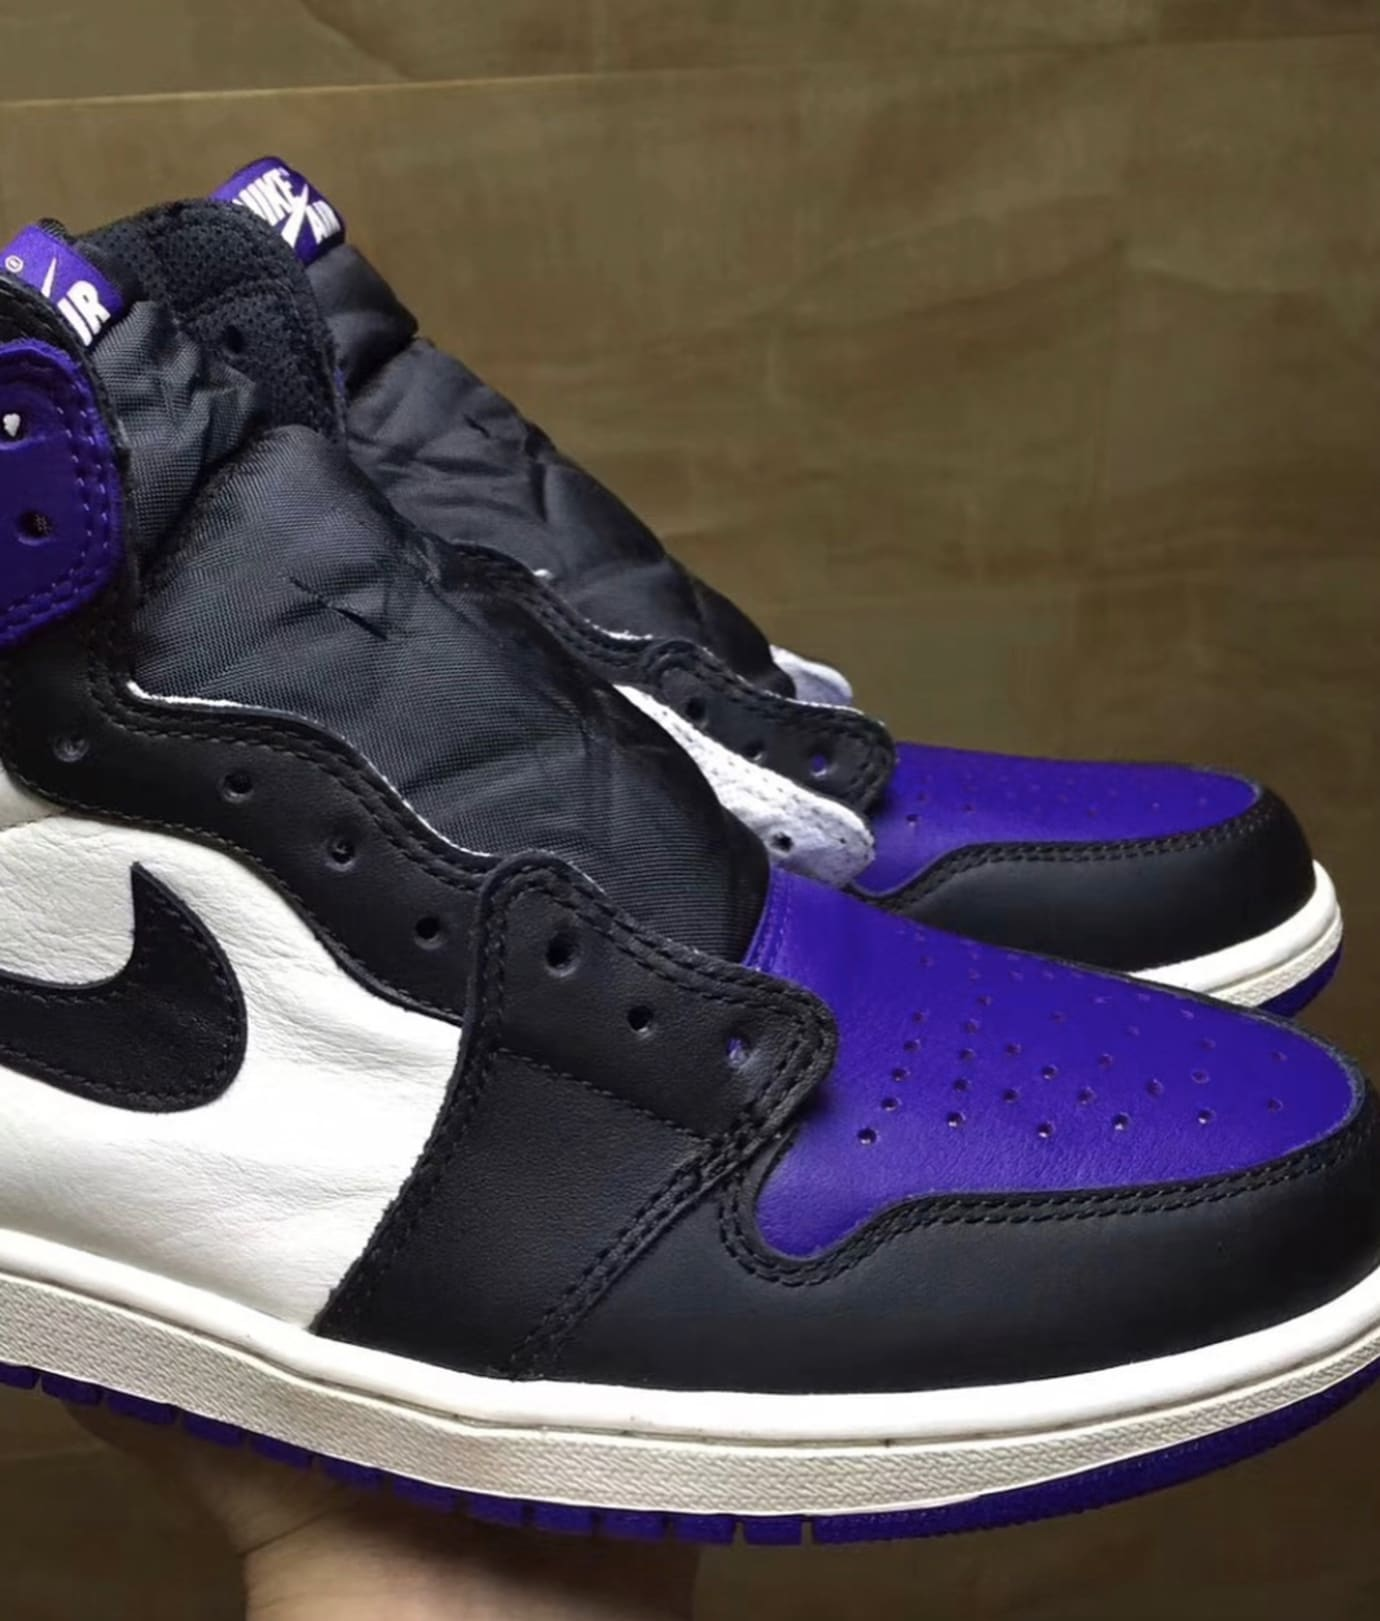 623f013393bf0c ... official image via 23talk air jordan 1 court purple 3 0315e 6c932